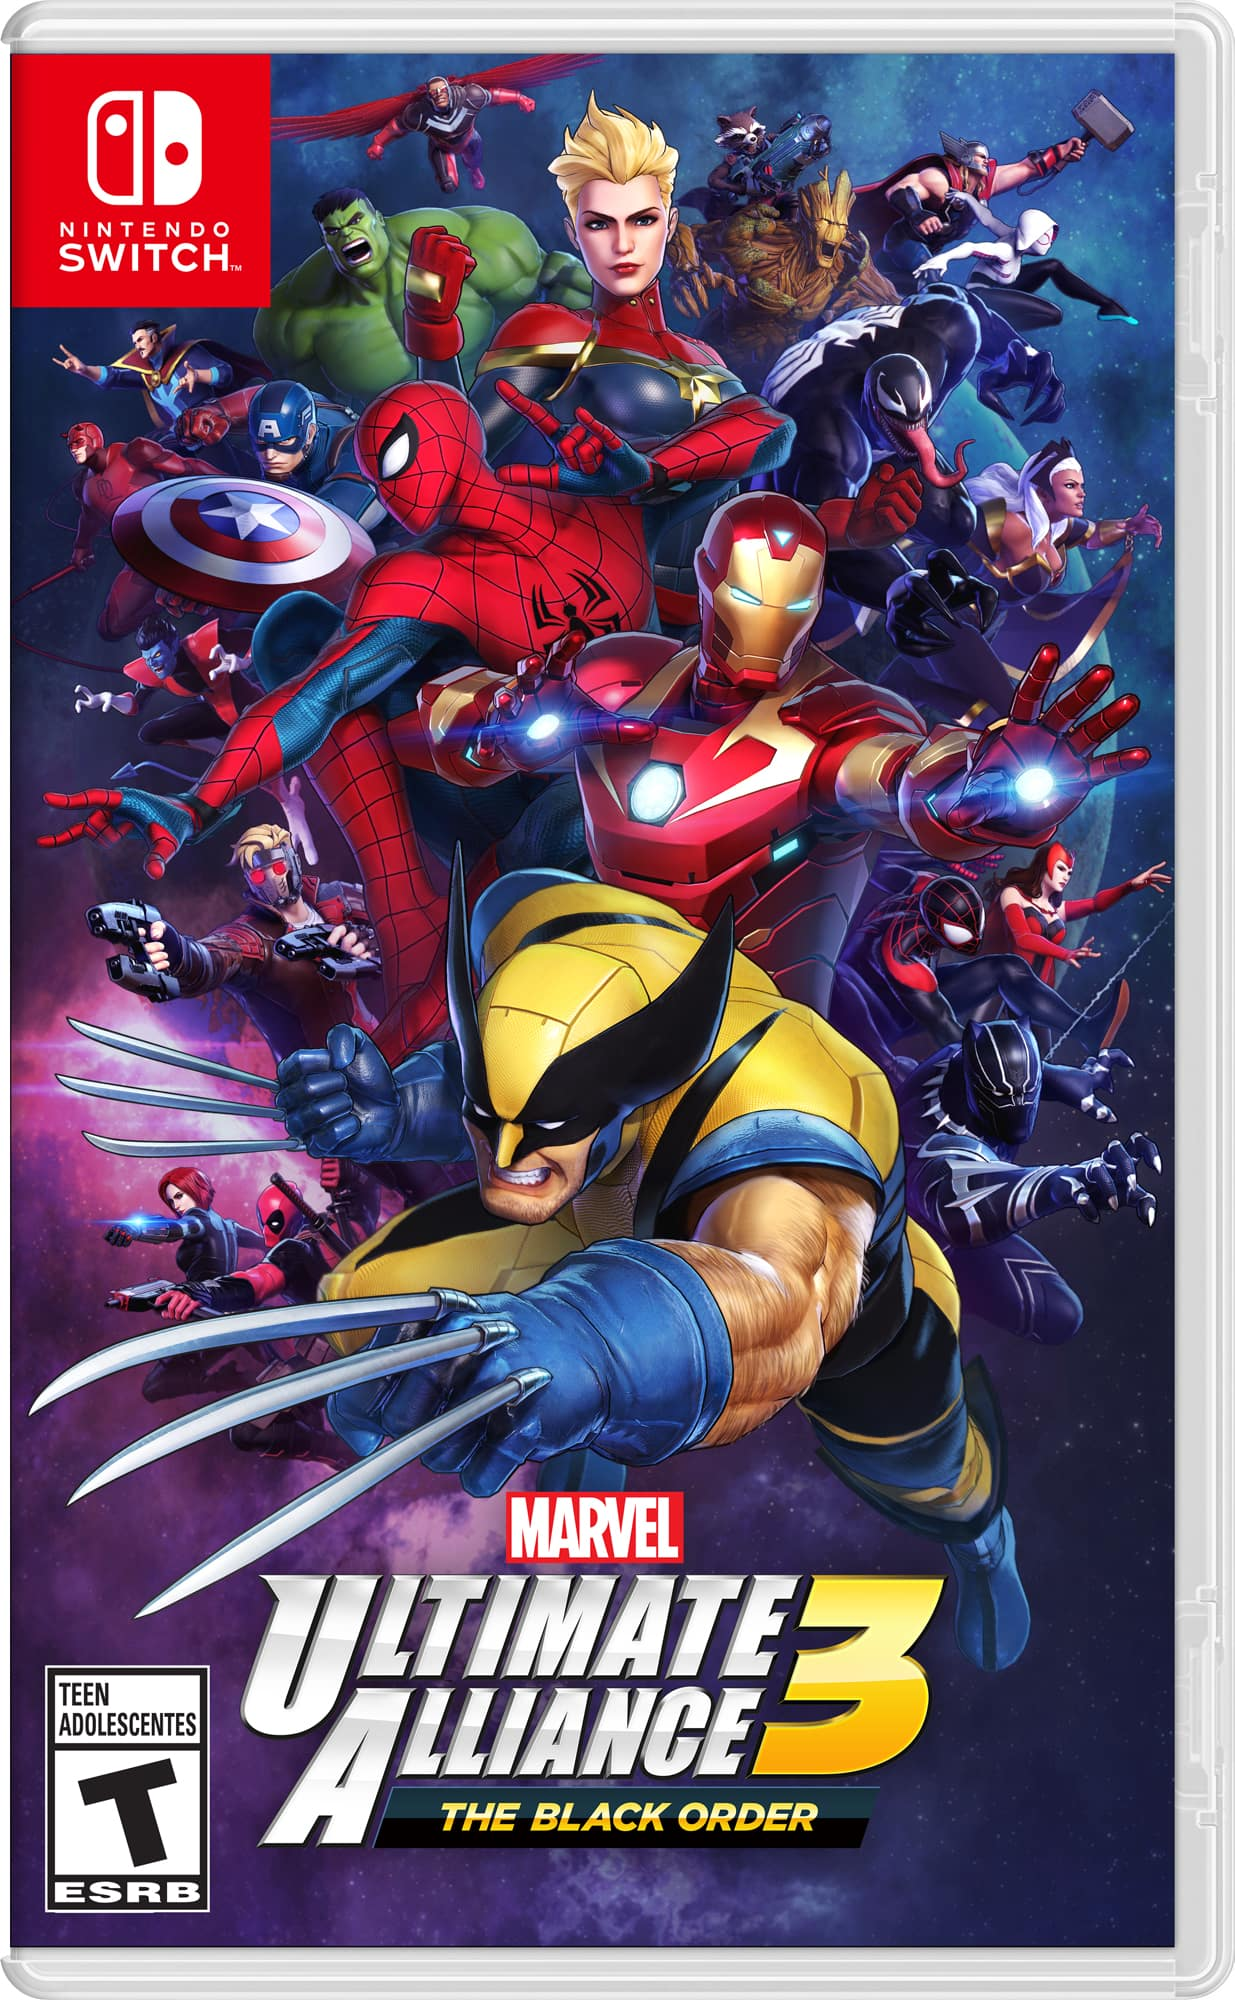 Marvel Ultimate Alliance 3: The Black Order - Nintendo Switch $47.39